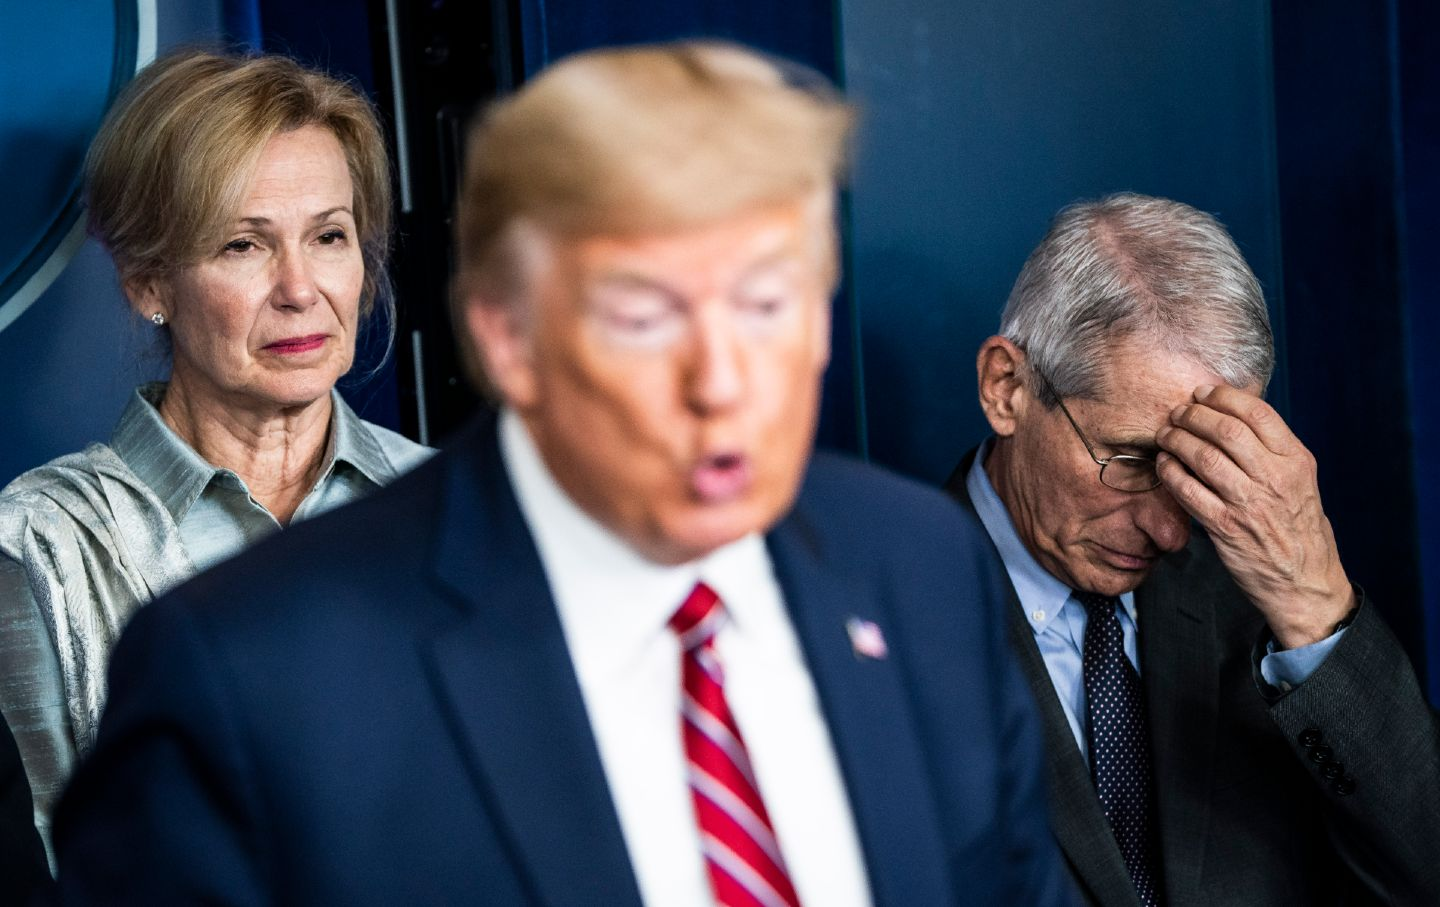 Donald Trump speaks while Dr. Anthony Fauci holds his head and looks down an Dr. Deborah Birx looks displeased